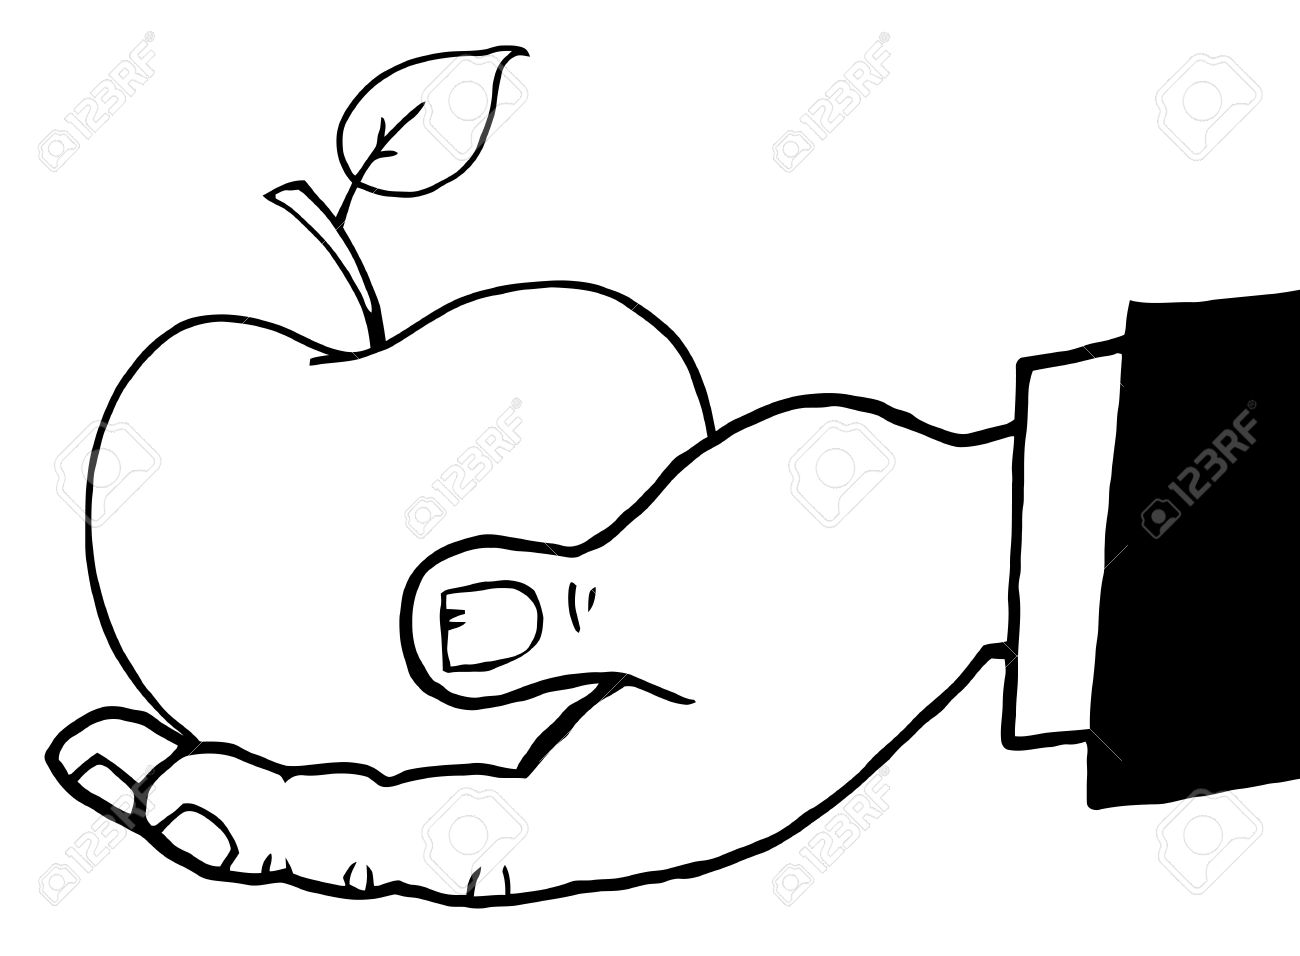 Outlined Hand Holding A Red Apple Stock Vector - 9276565